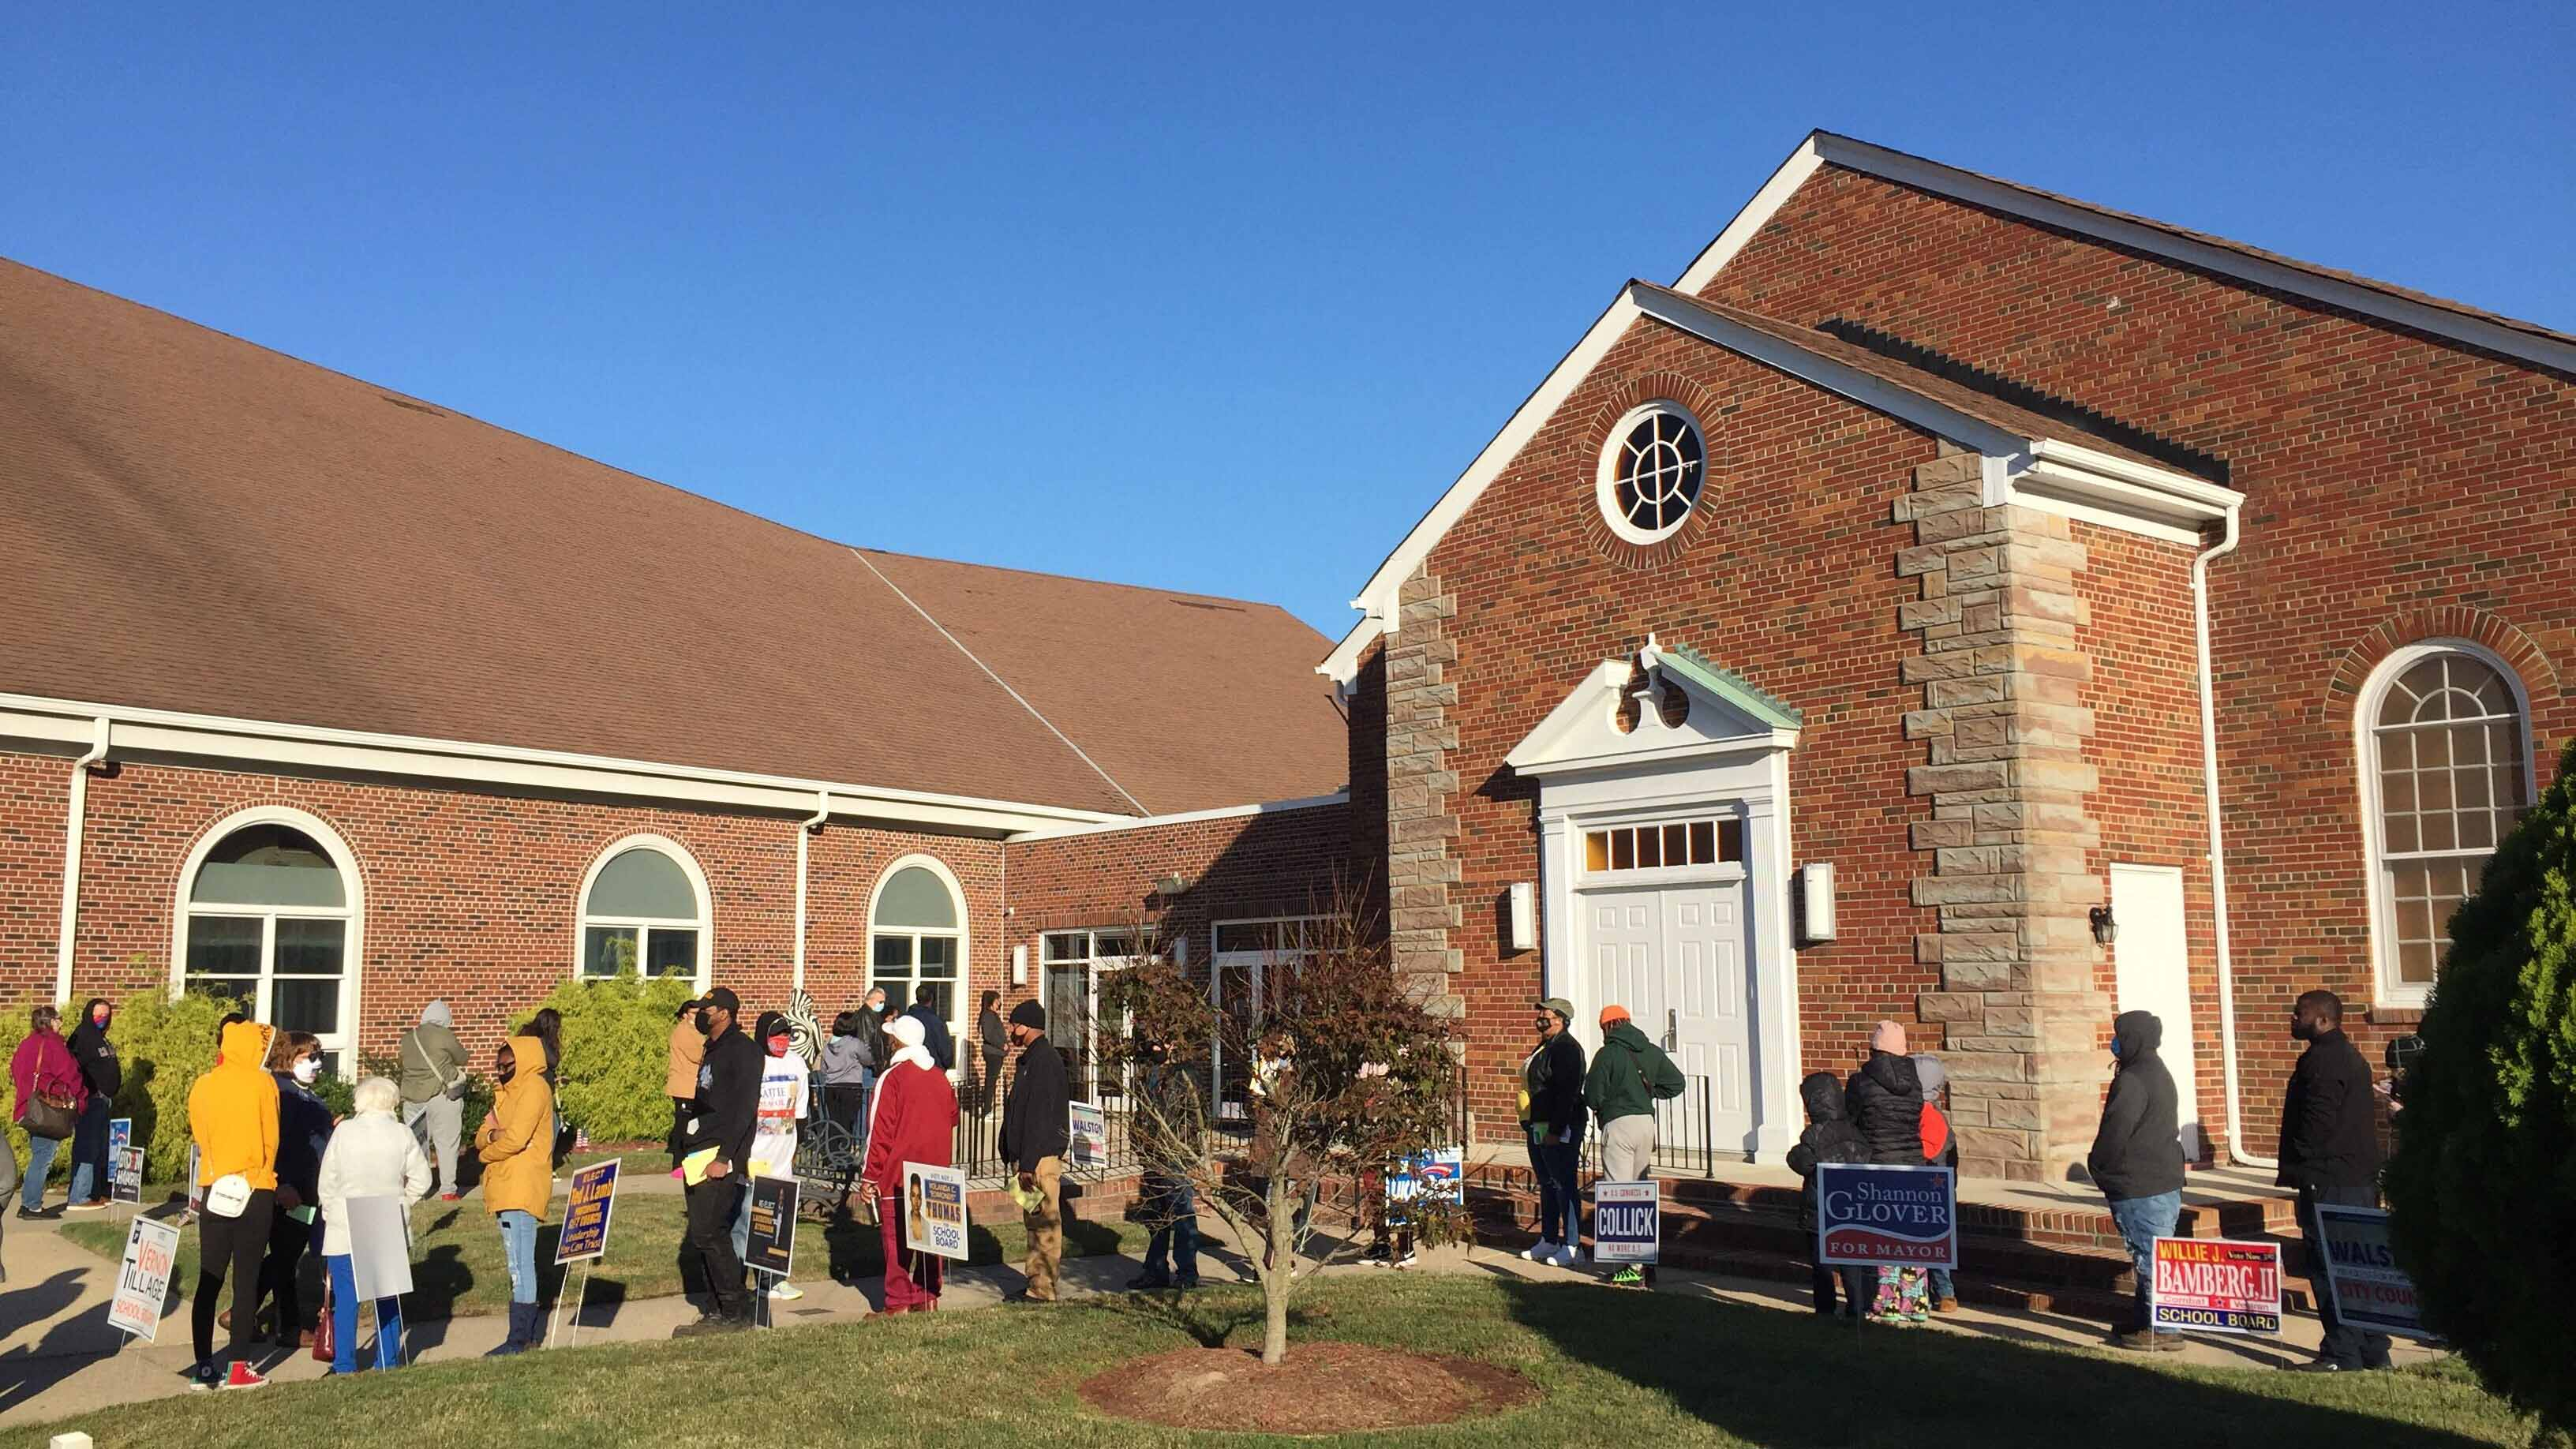 Photo by Jonah Grinkewitz, WHRO. Portsmouth voters lined up on a crisp Election Day 2020 at Grove Baptist Church to cast their ballots for the presidency among other important local races.